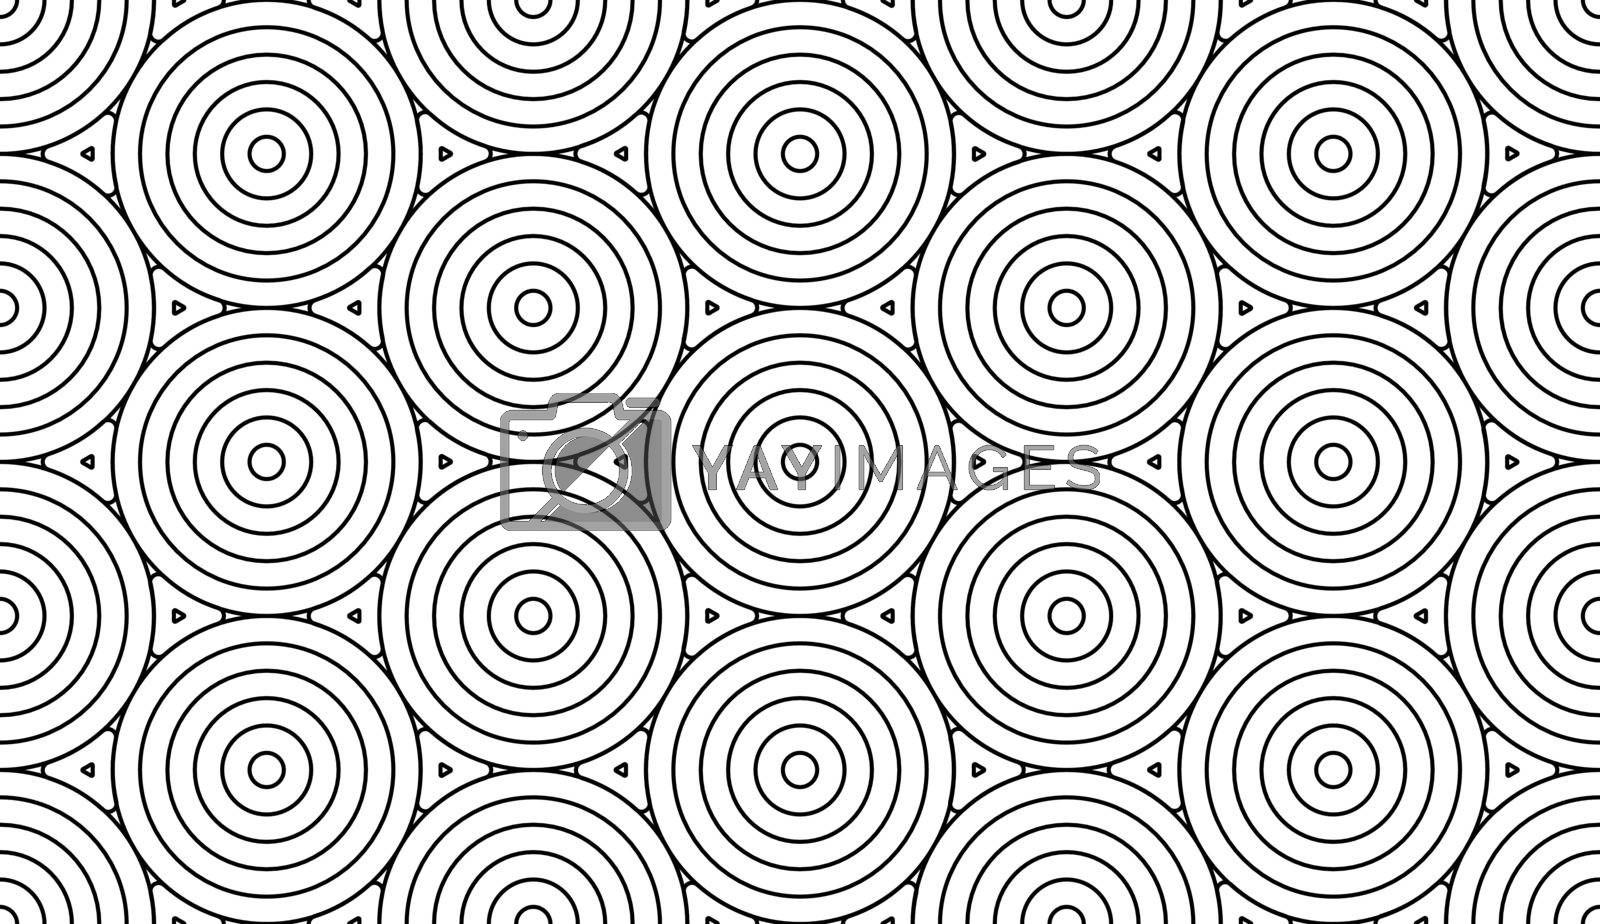 Monochrome doodle art deco abstract seamless background with circles stroke line.